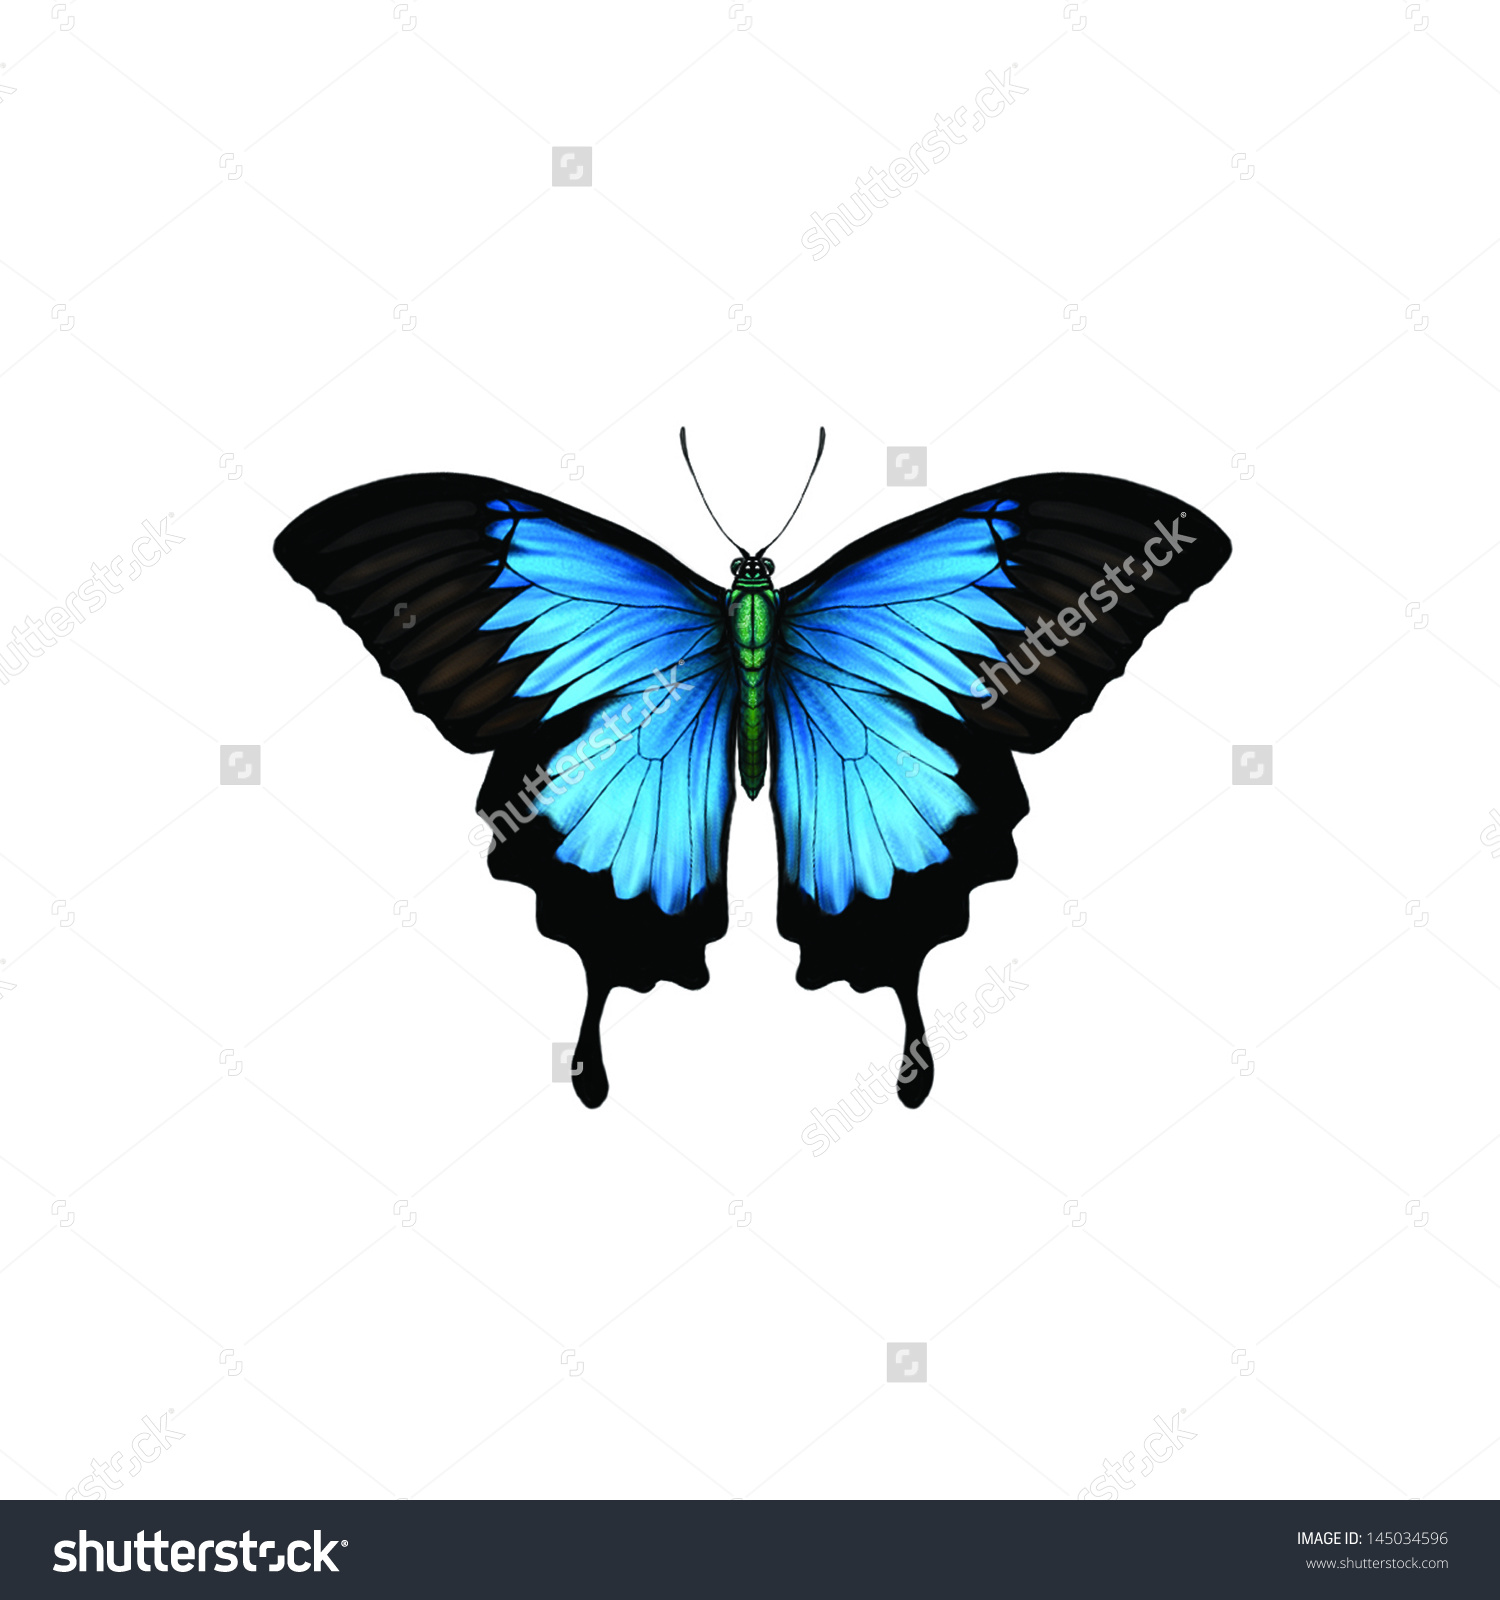 Ulysses Butterfly clipart #4, Download drawings